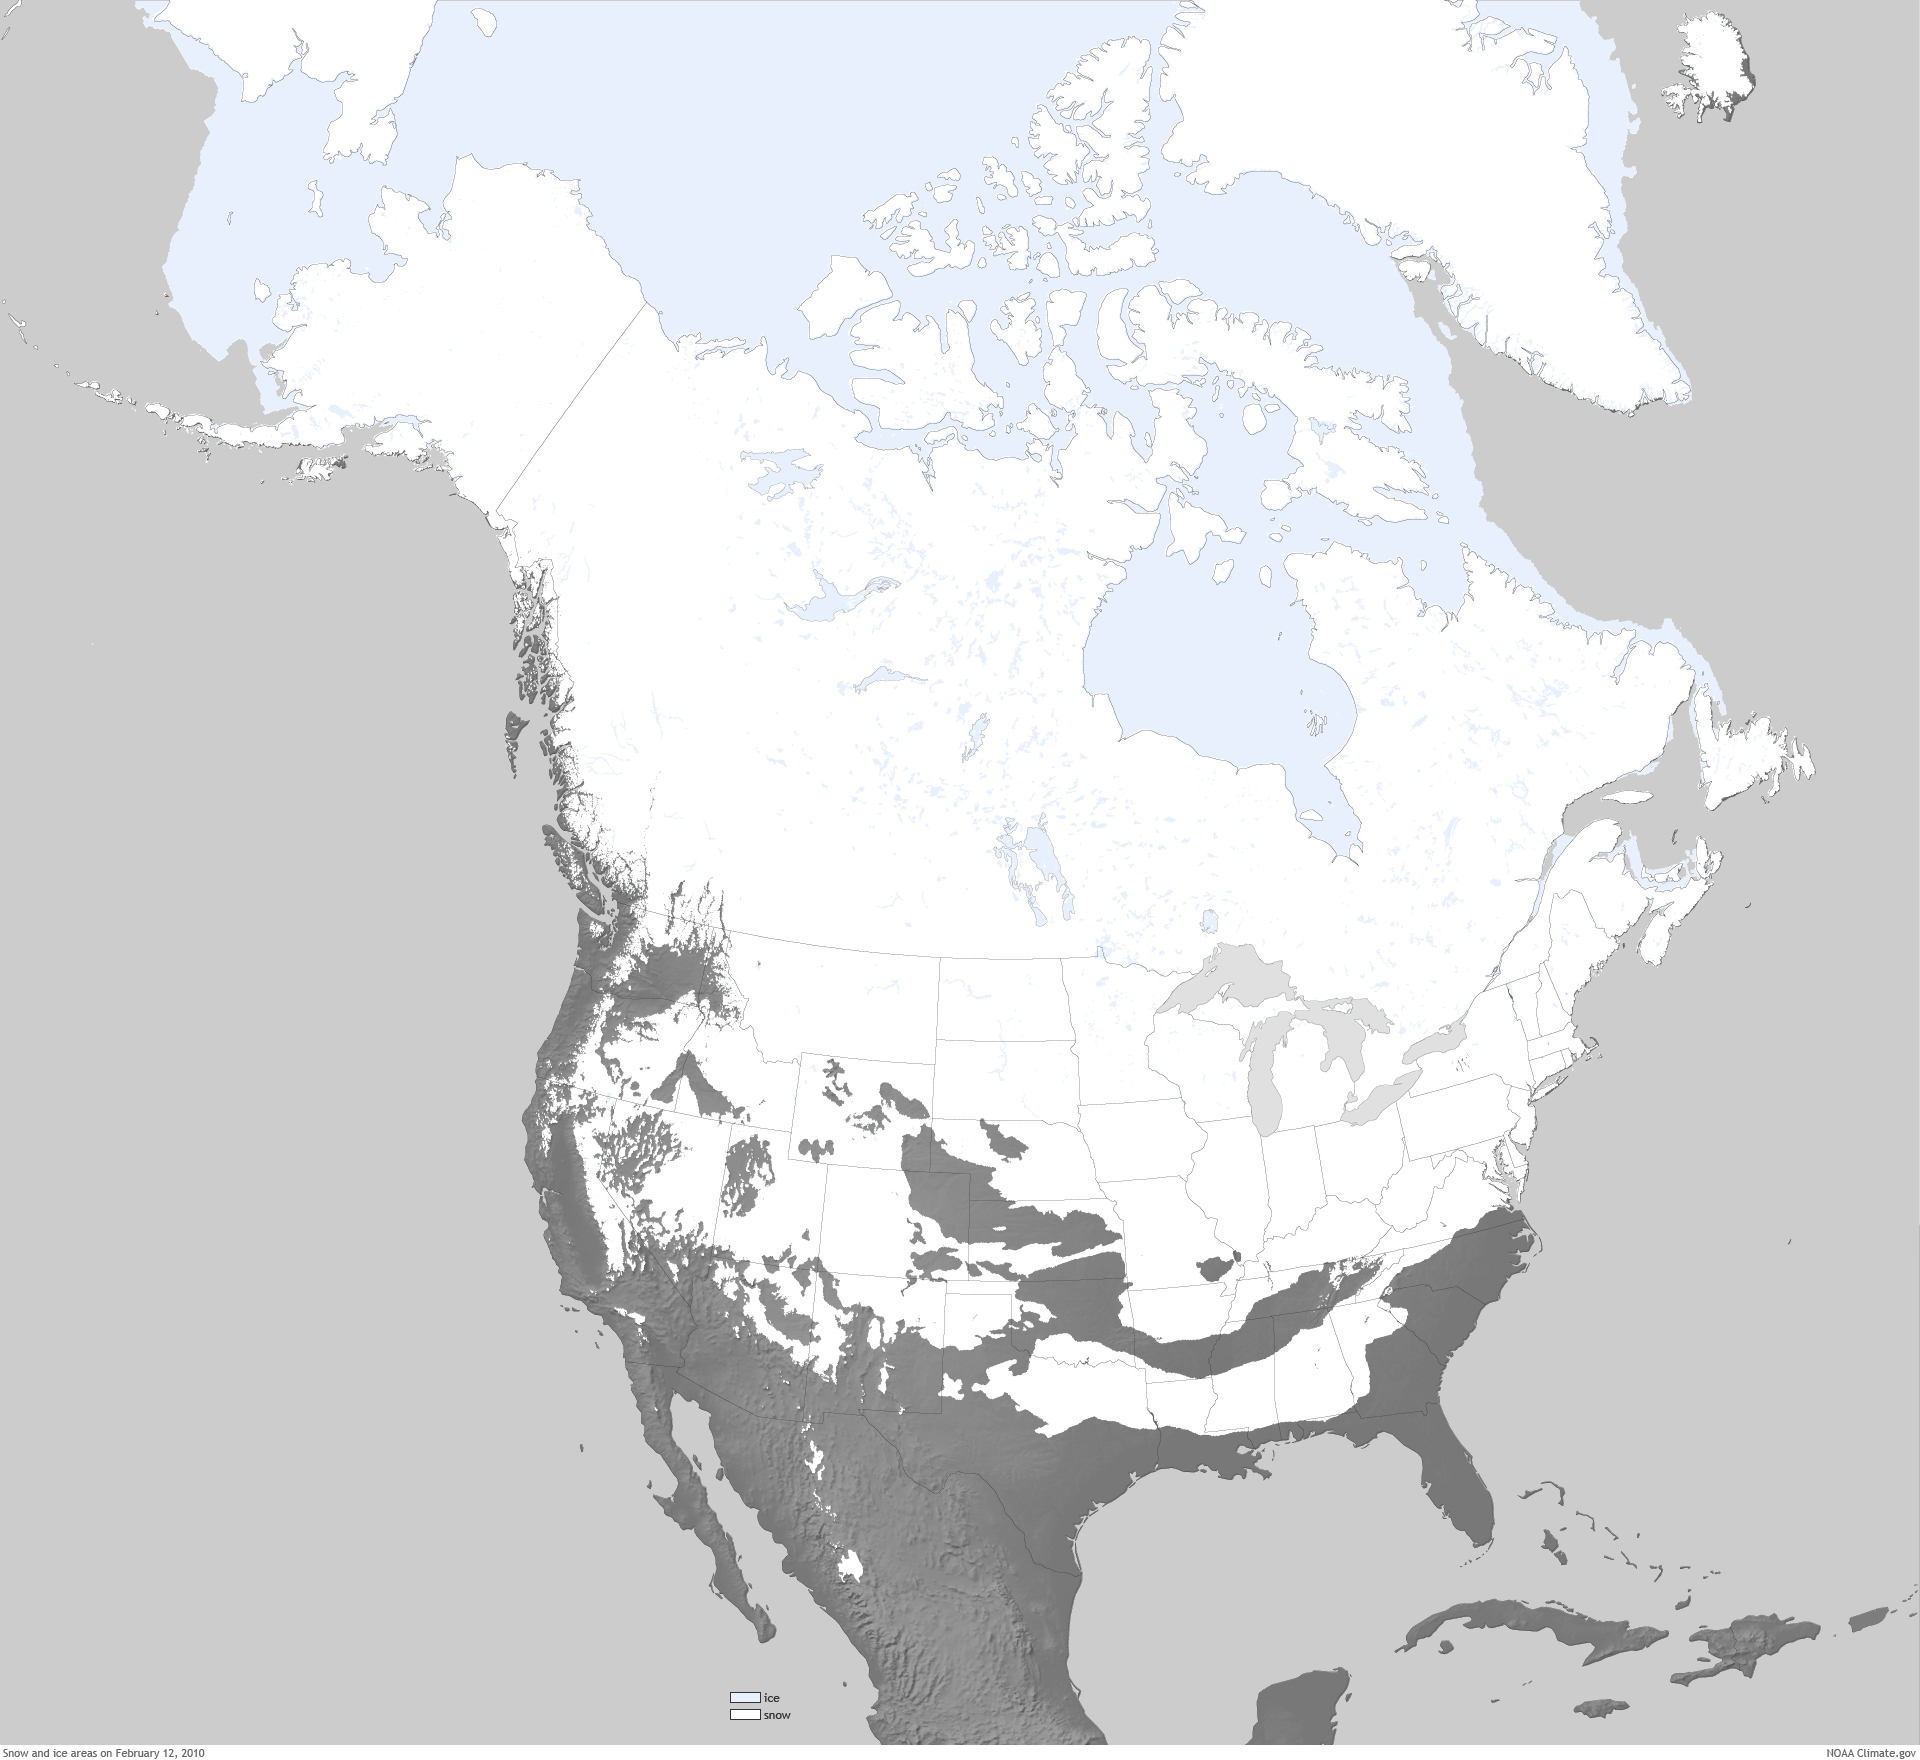 Five Years Ago This Week All States Had Snow On The Ground - Us snow cover map noaa